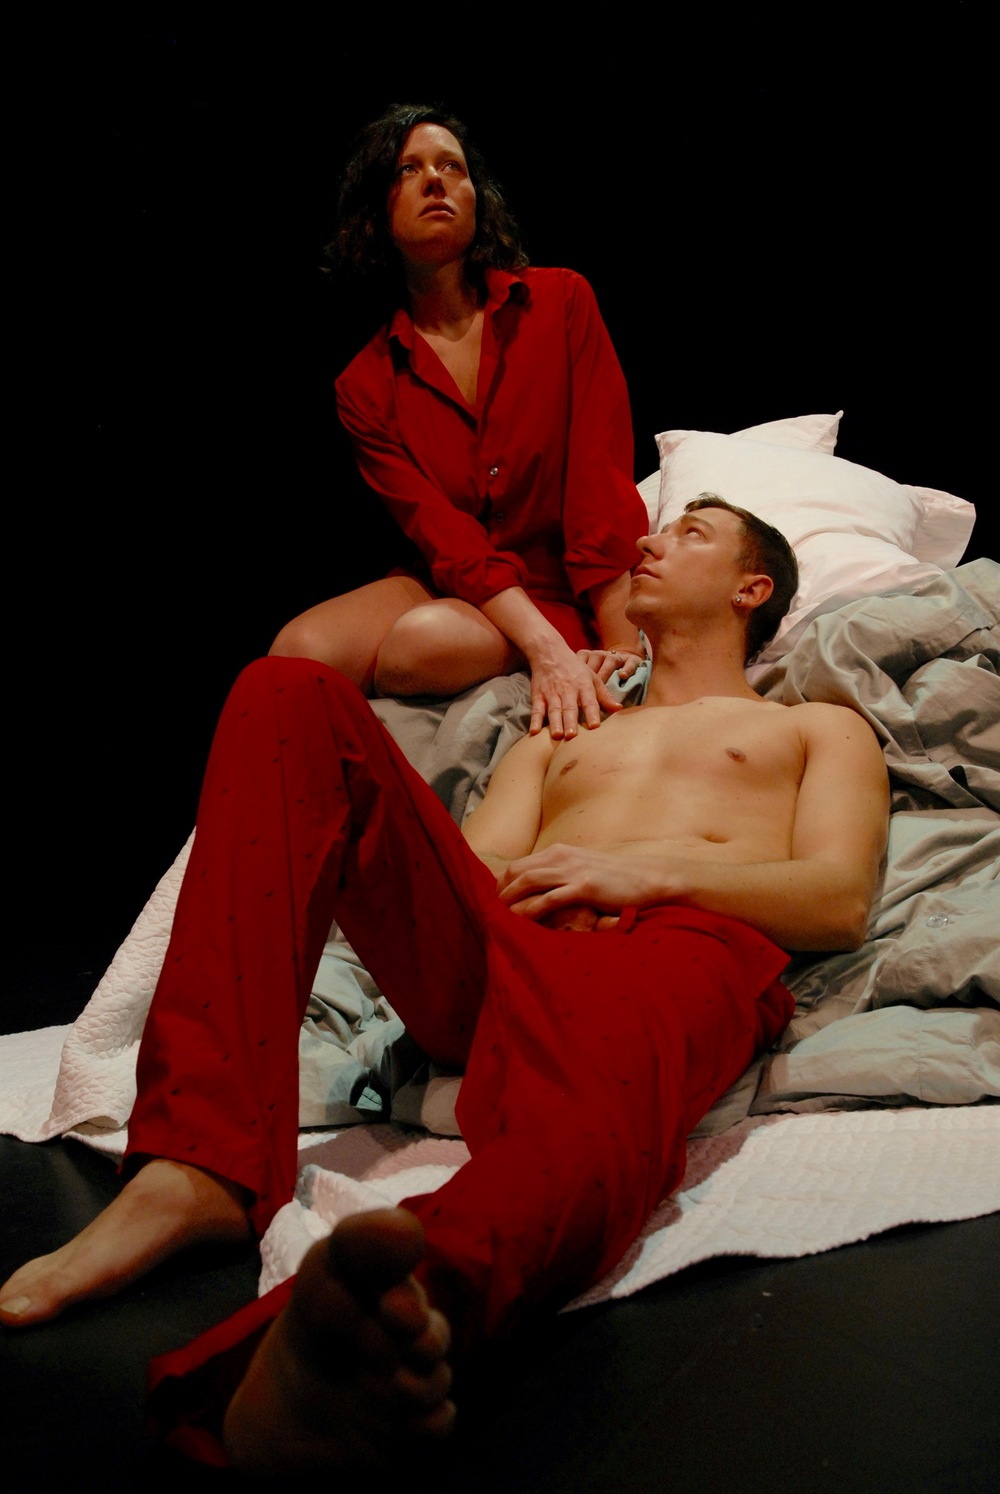 Anna Botsford as Lisa and Elliot Sicard as Will.  View the Unsafe gallery >